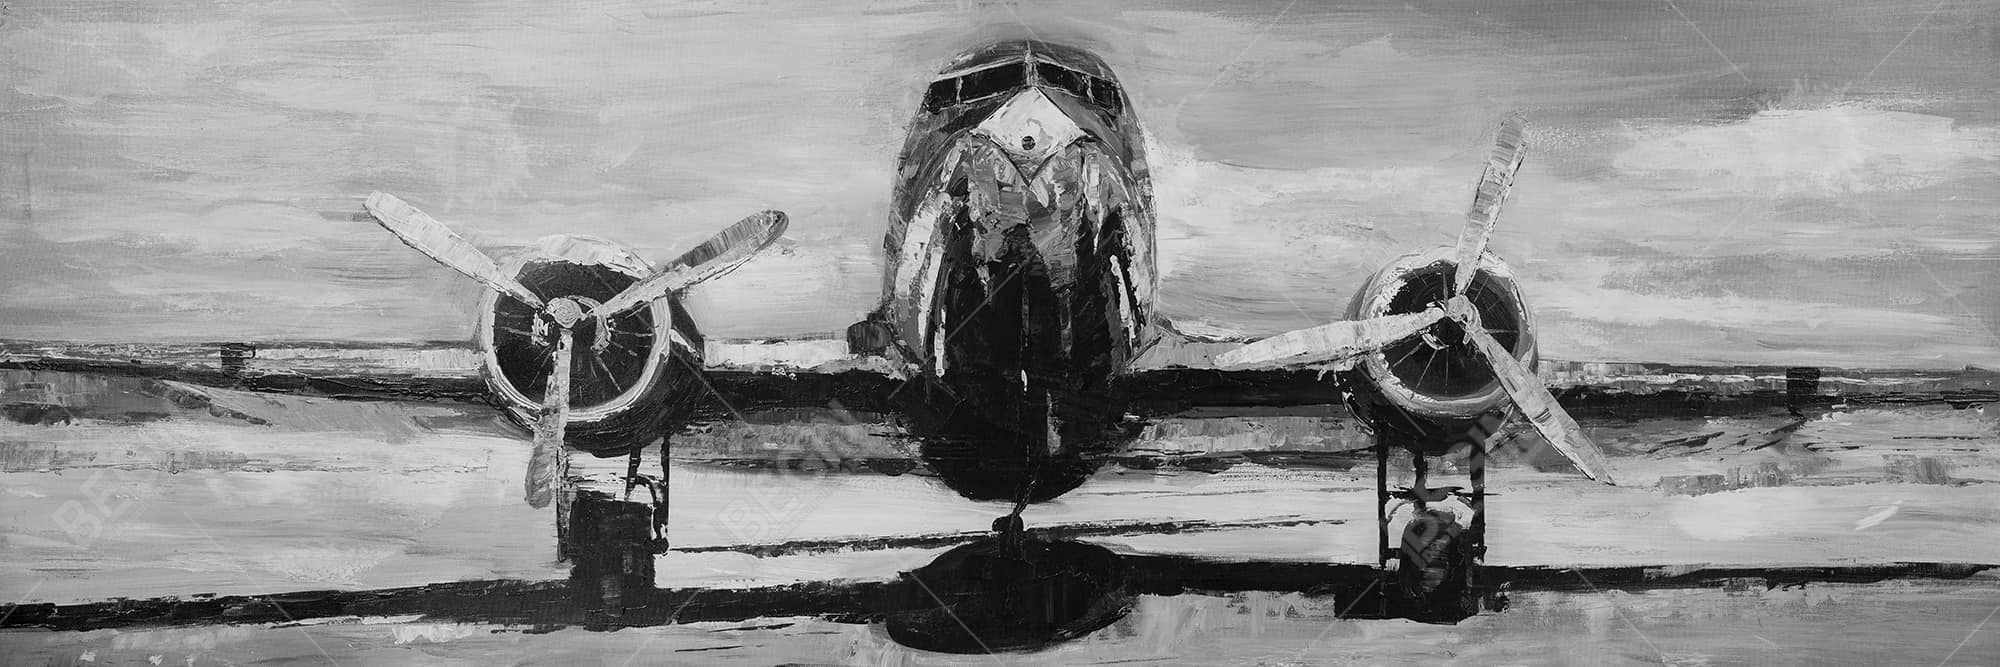 Grayscale plane